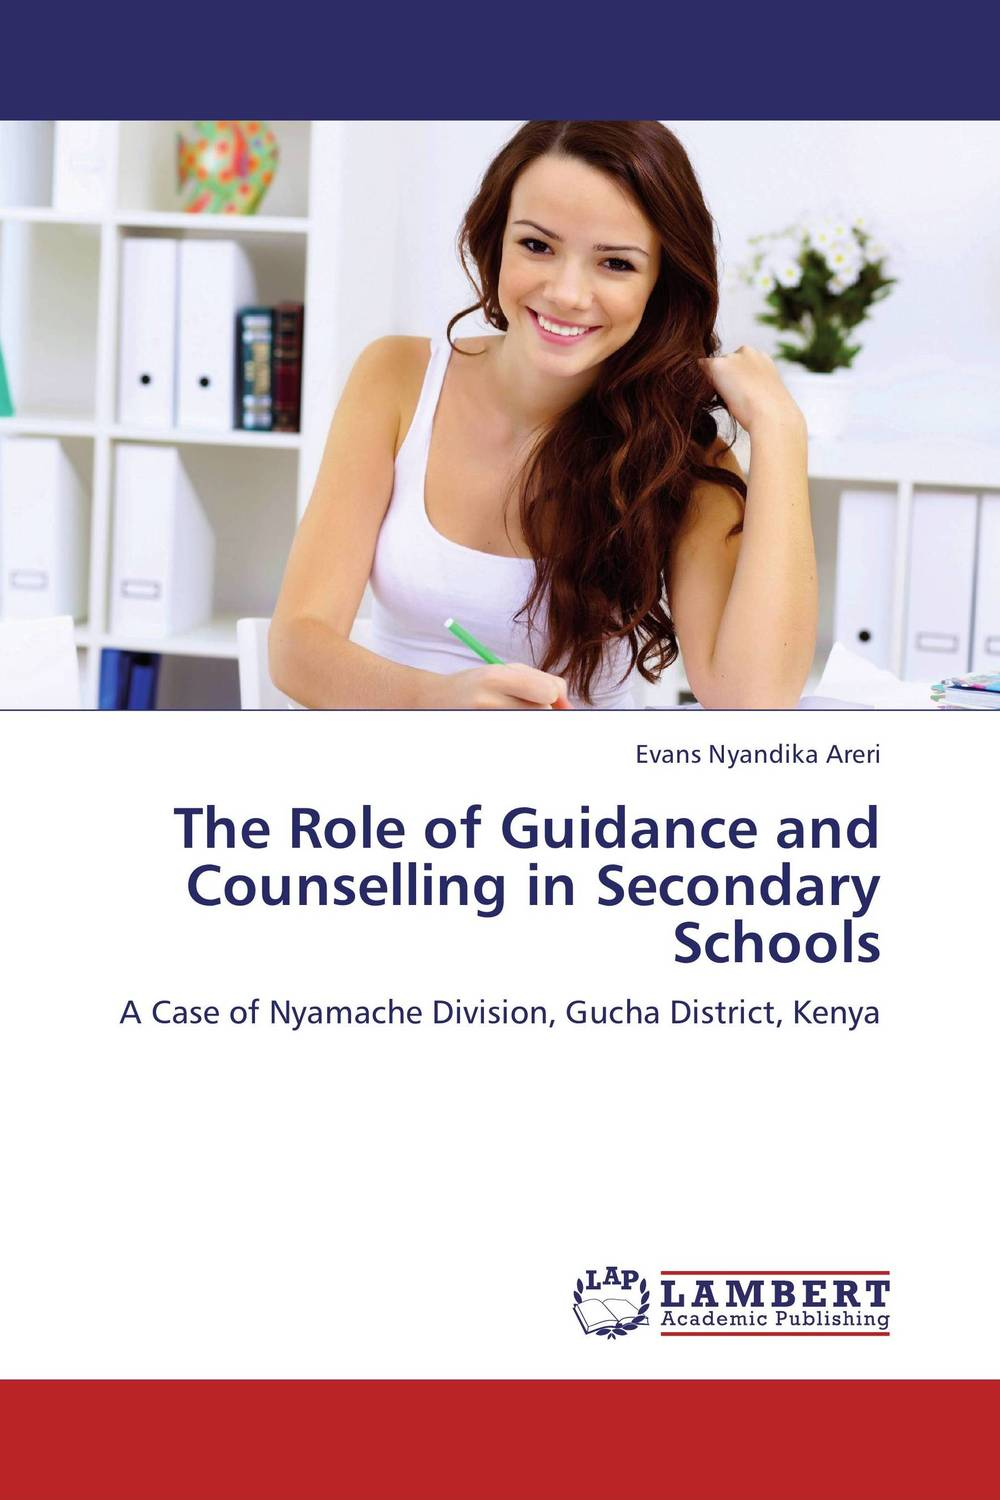 The Role of Guidance and Counselling in Secondary Schools administrative challenges facing public secondary schools